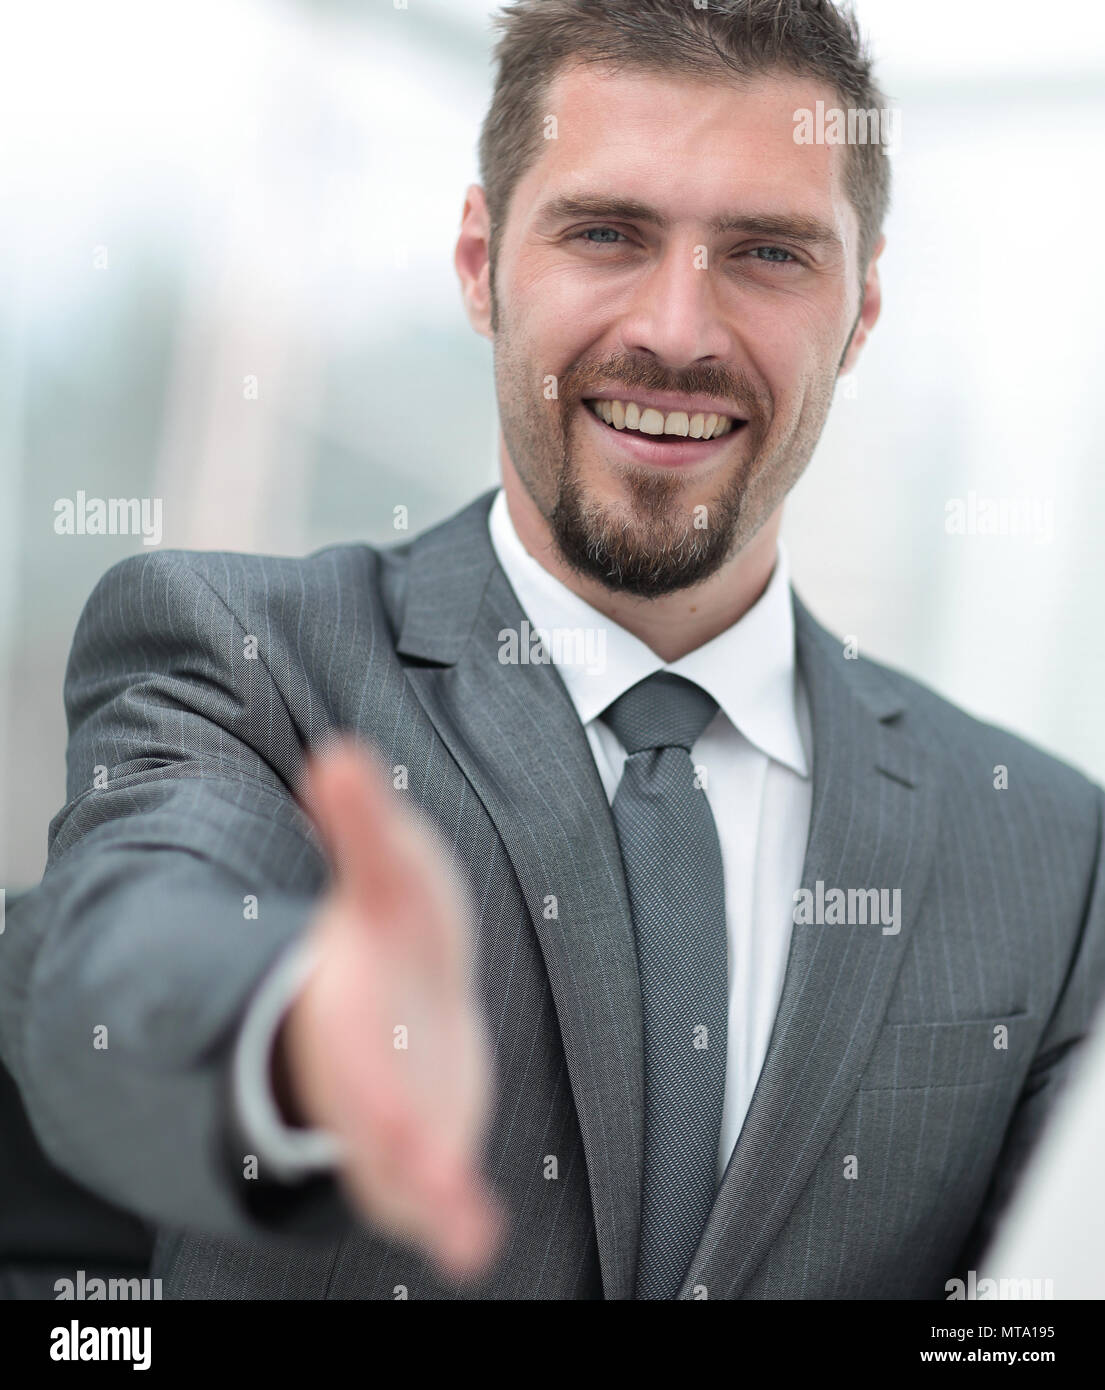 closeup .a successful businessman extends his hand for a handshake, - Stock Image